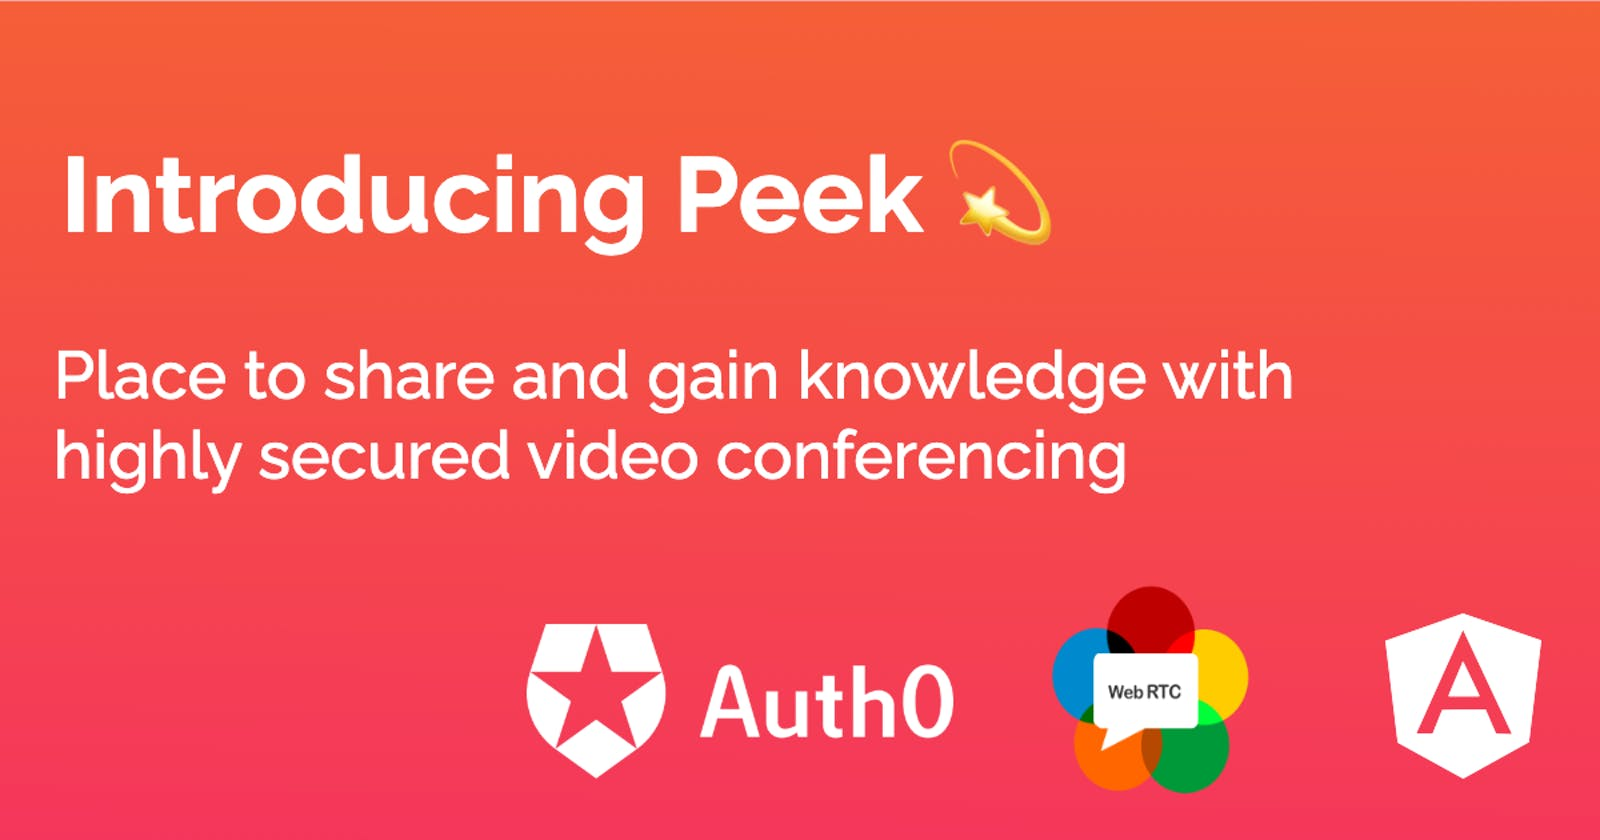 Introducing Peek 💫 - Place to share & gain knowledge with highly secured video conferencing (Auth0 + WebRTC + Angular)